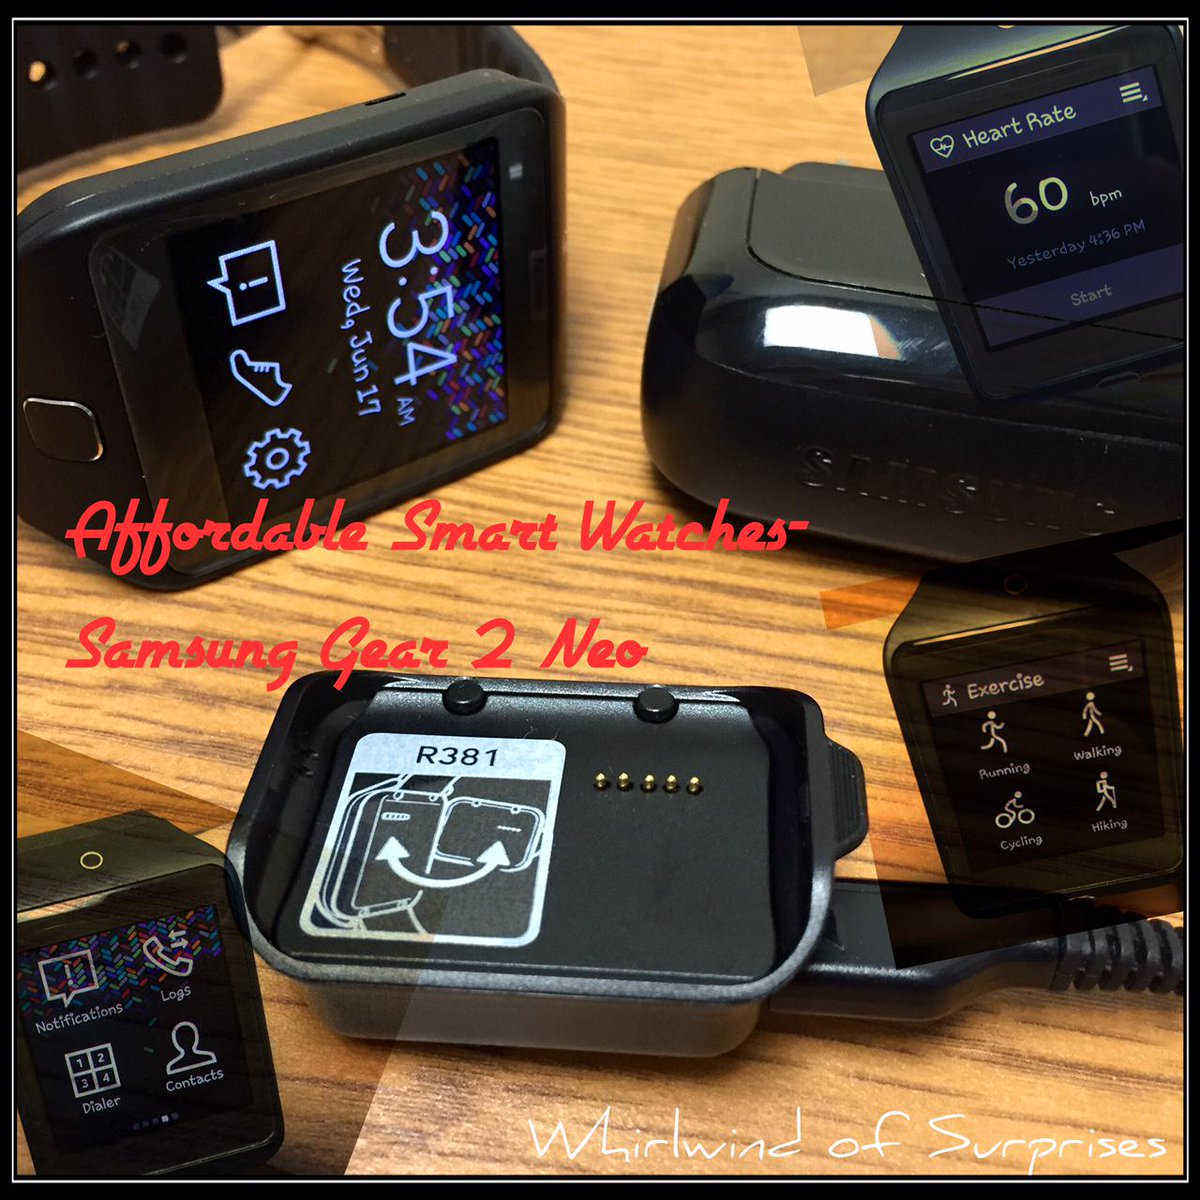 Samsung Gear 2 Neo smart watch review